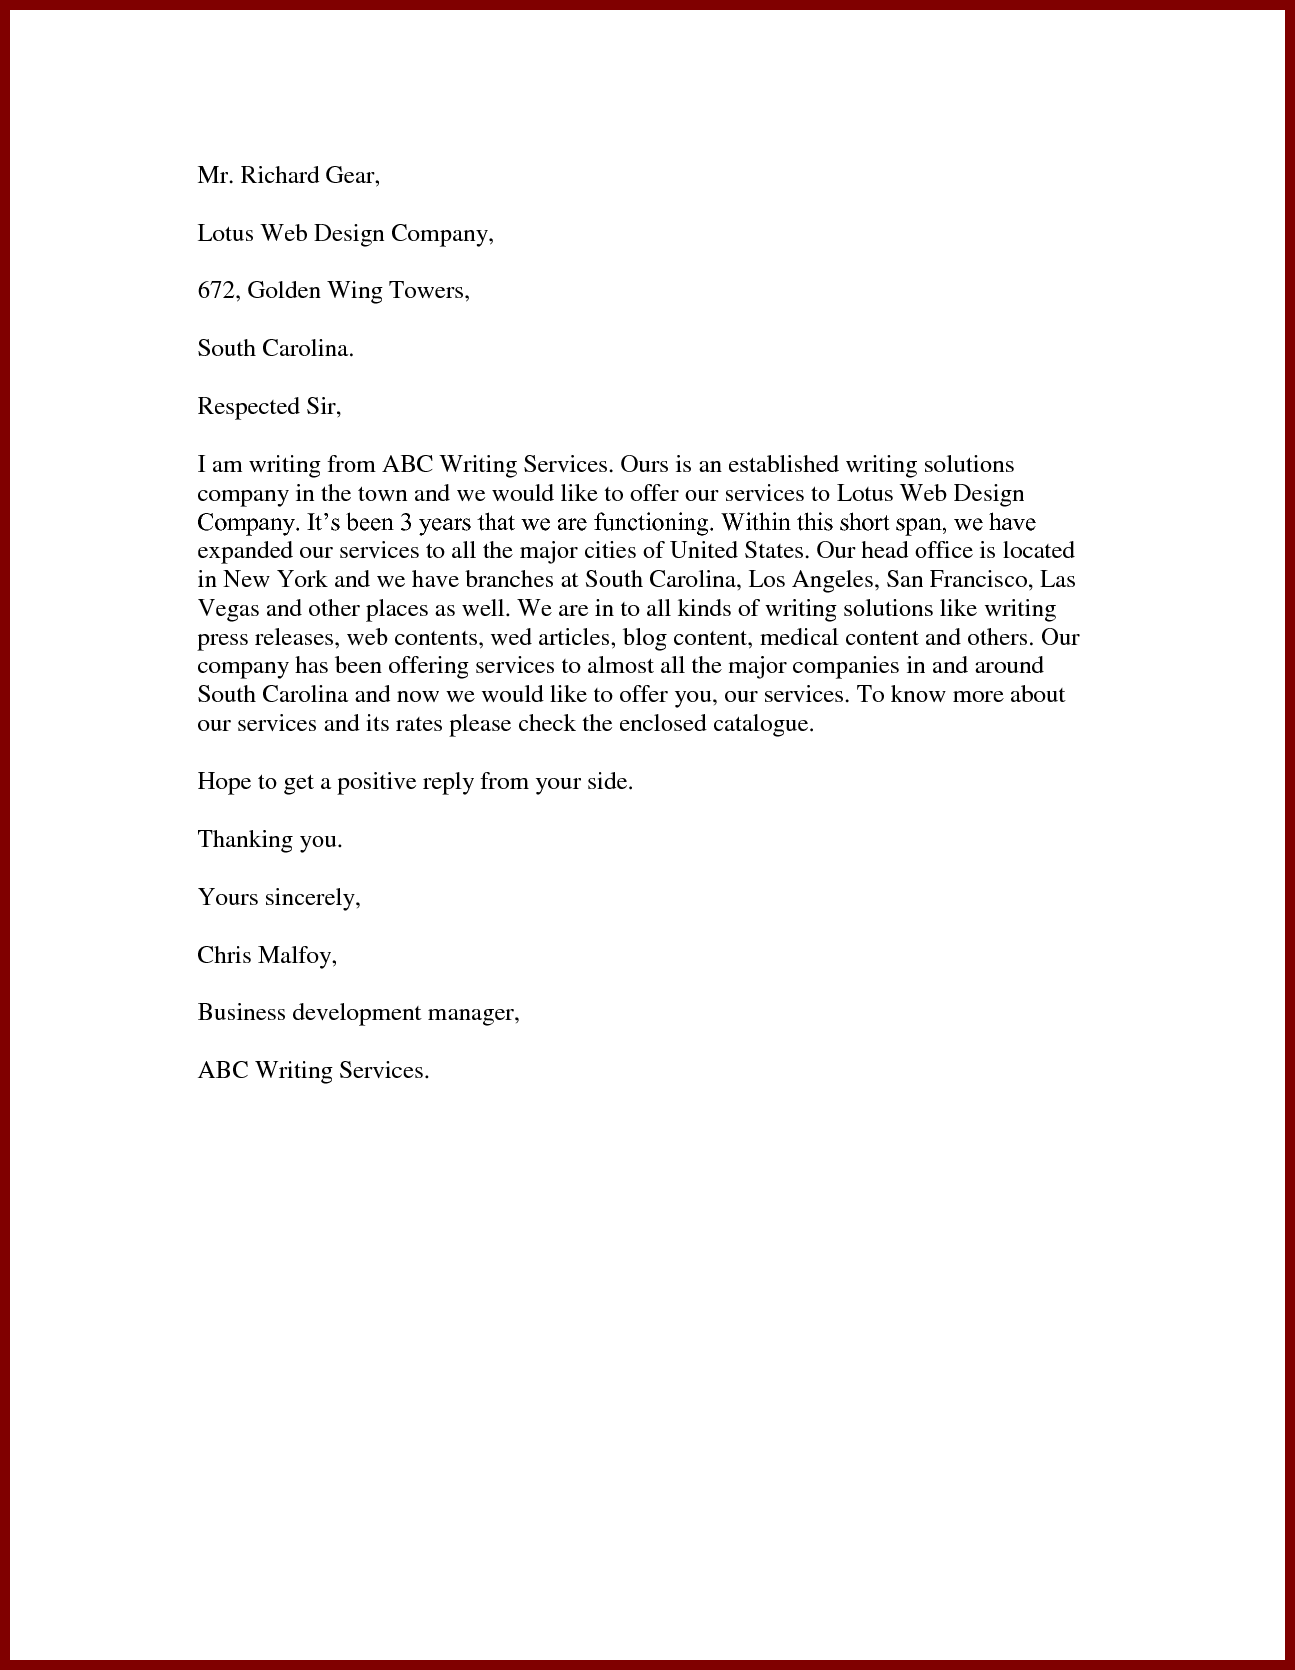 sample proposal letter for services Boat.jeremyeaton.co